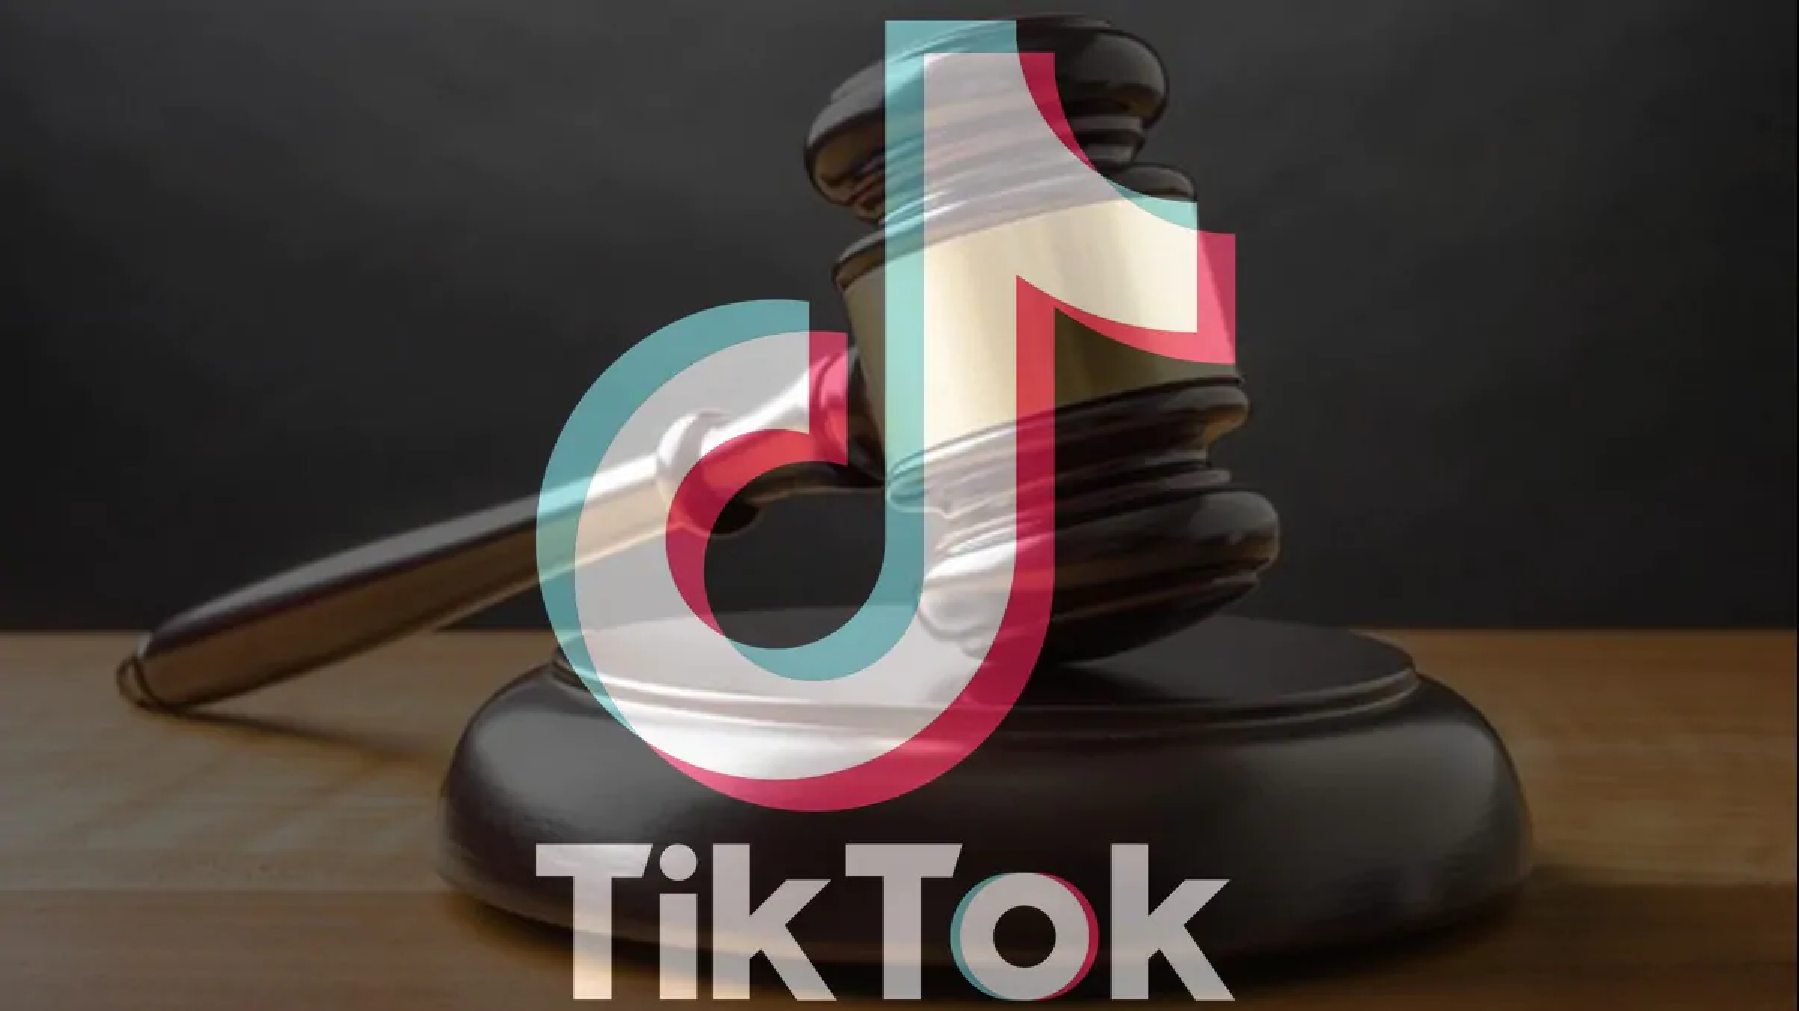 Tiktok Ban Lifted In India: Madras High Court Passes Order